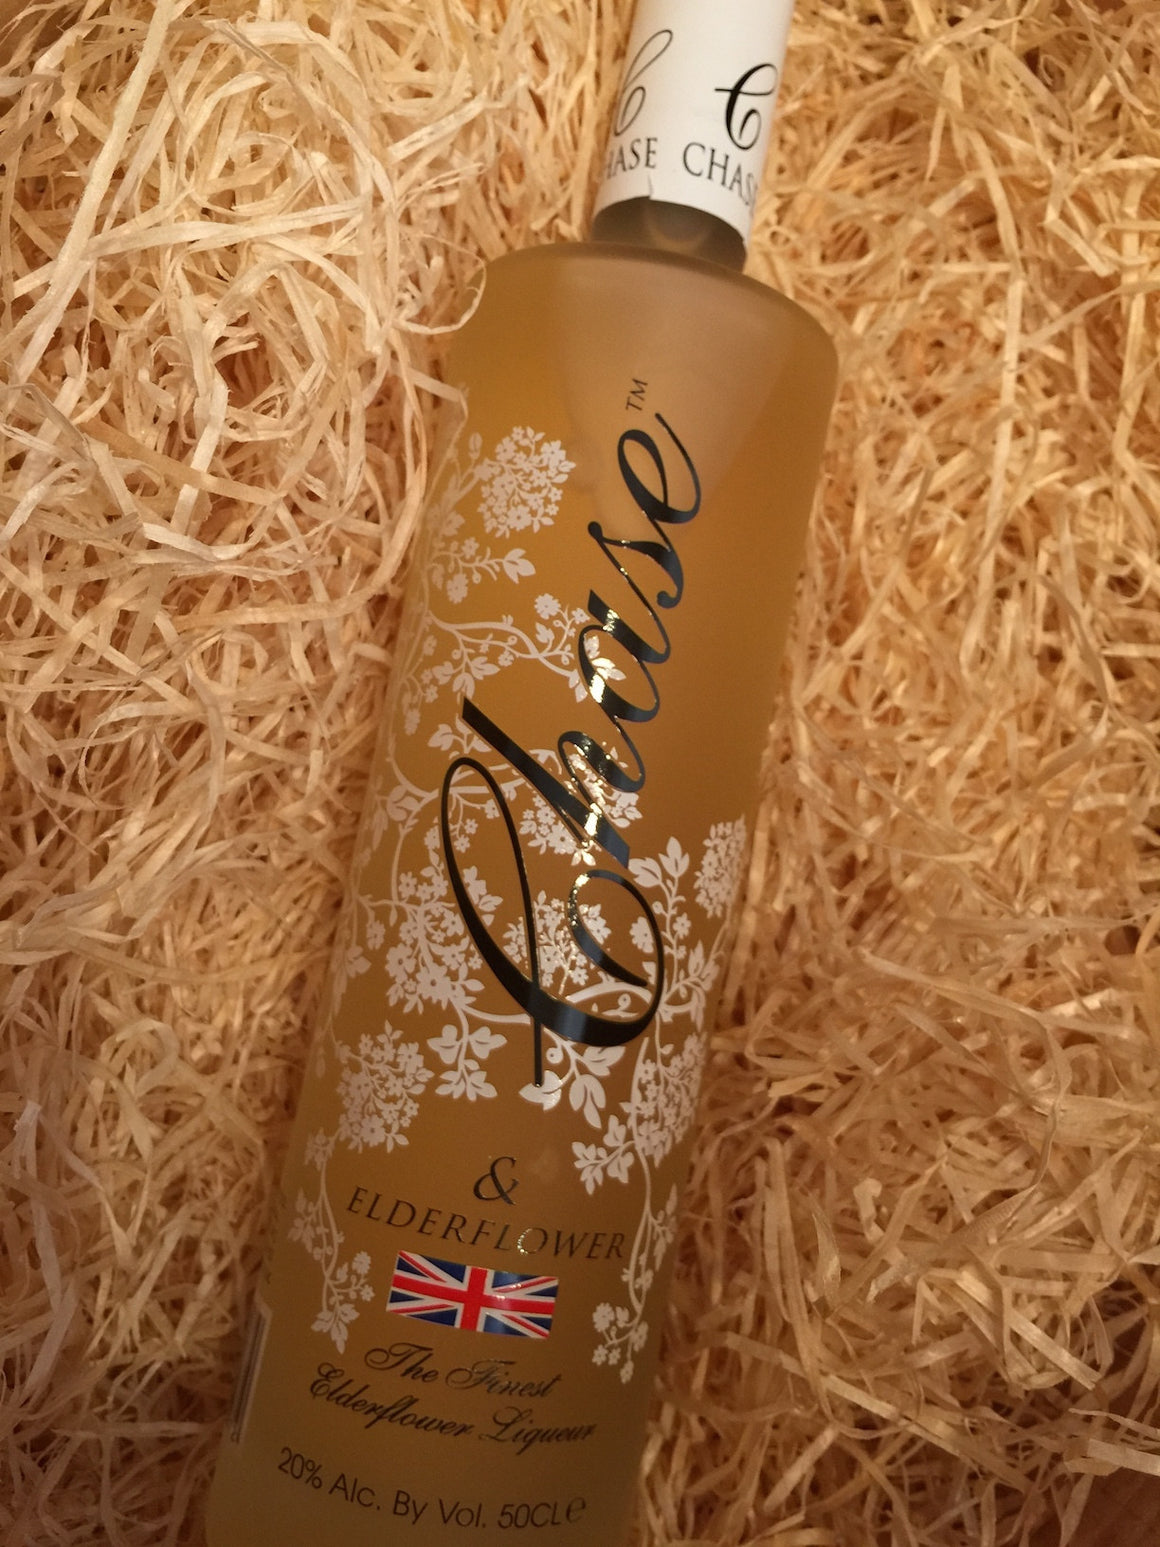 Chase Elderflower Liqueur 50cl